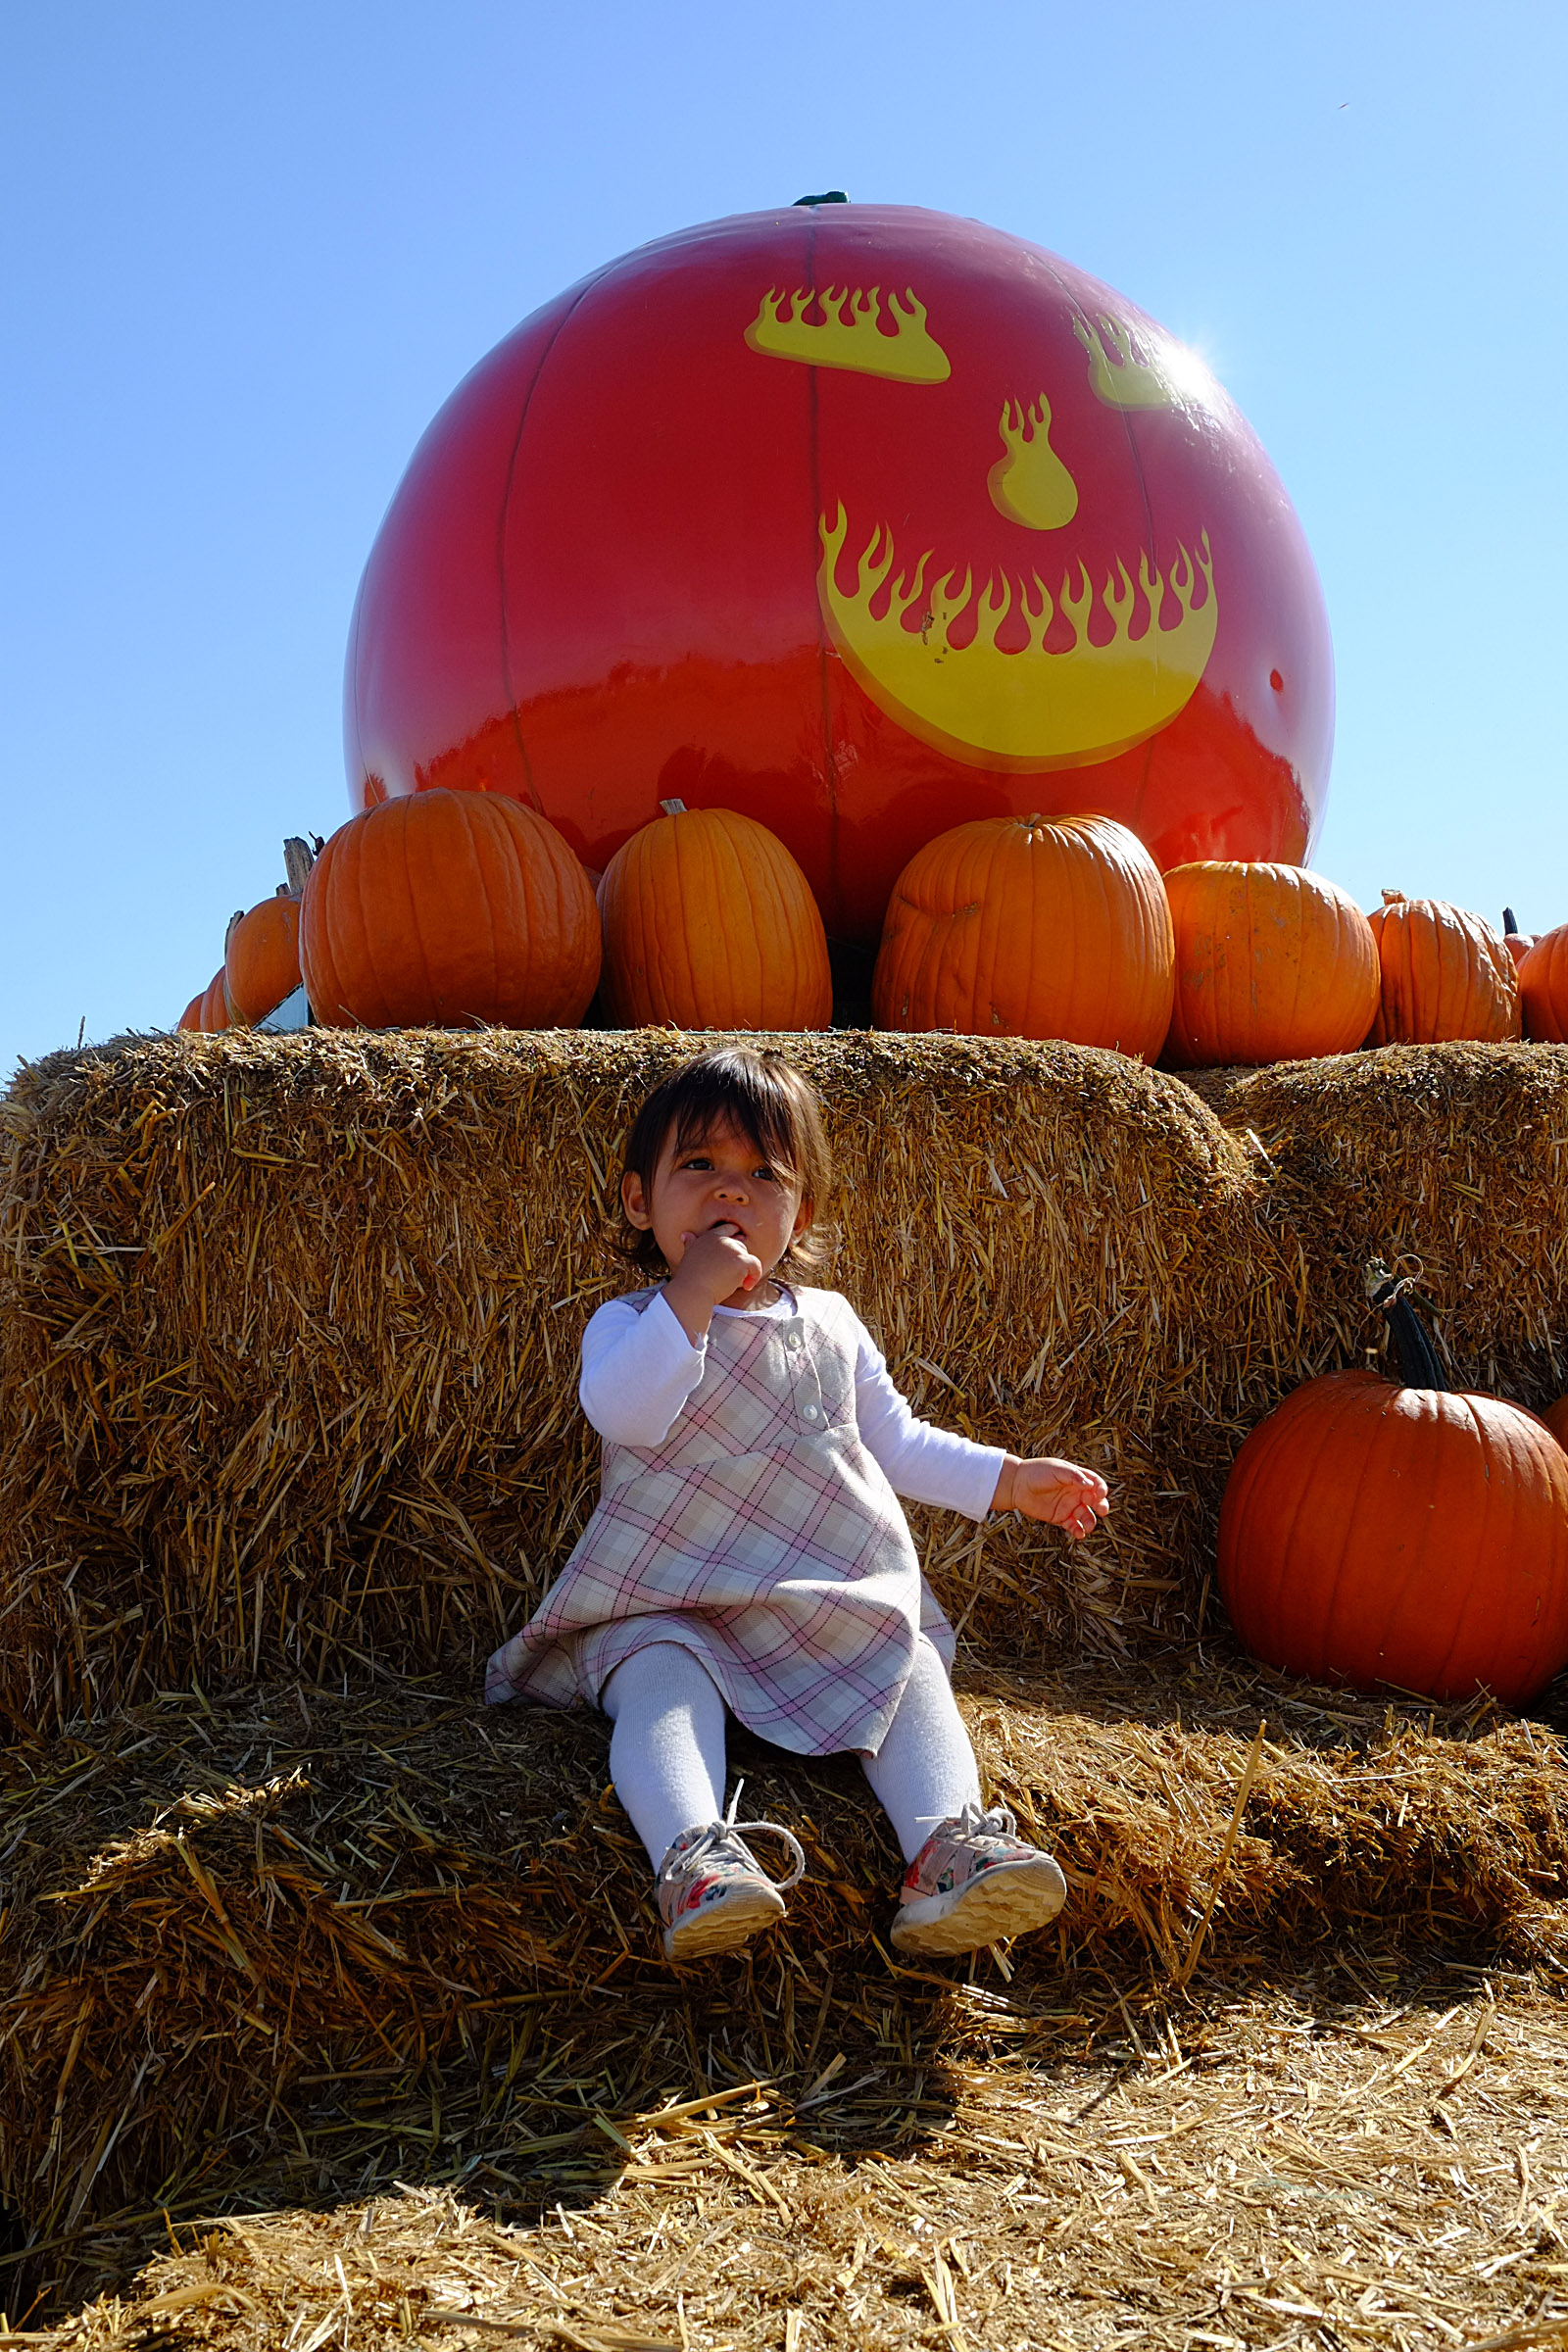 Moomin @ Uncle Ray's Pumpkin Patch